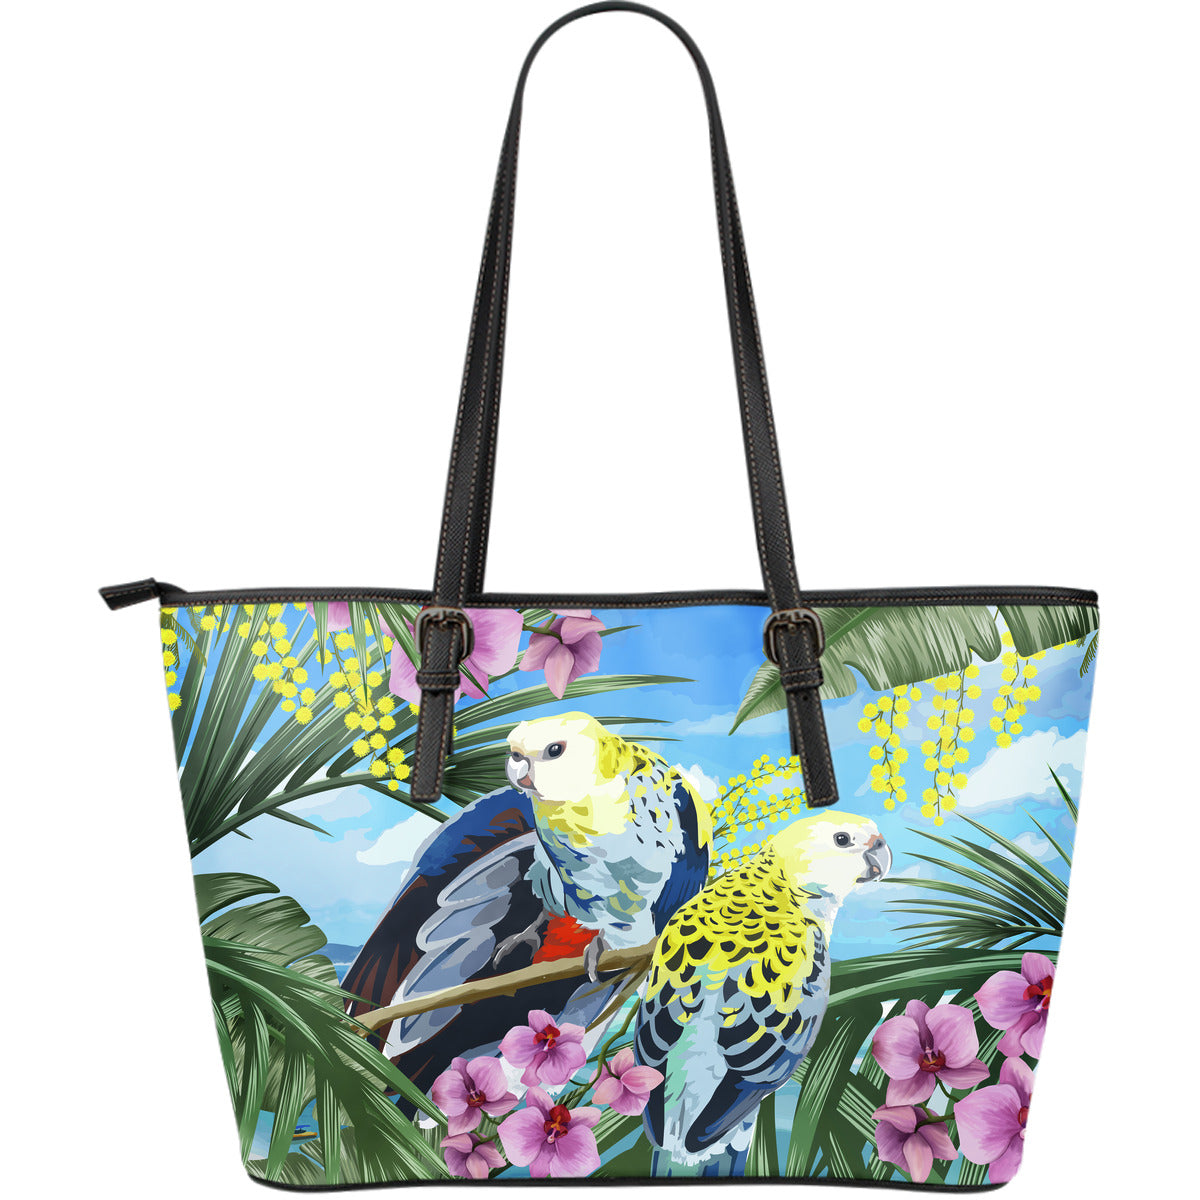 Australia Leather Tote Bags Pale Headed Rosella